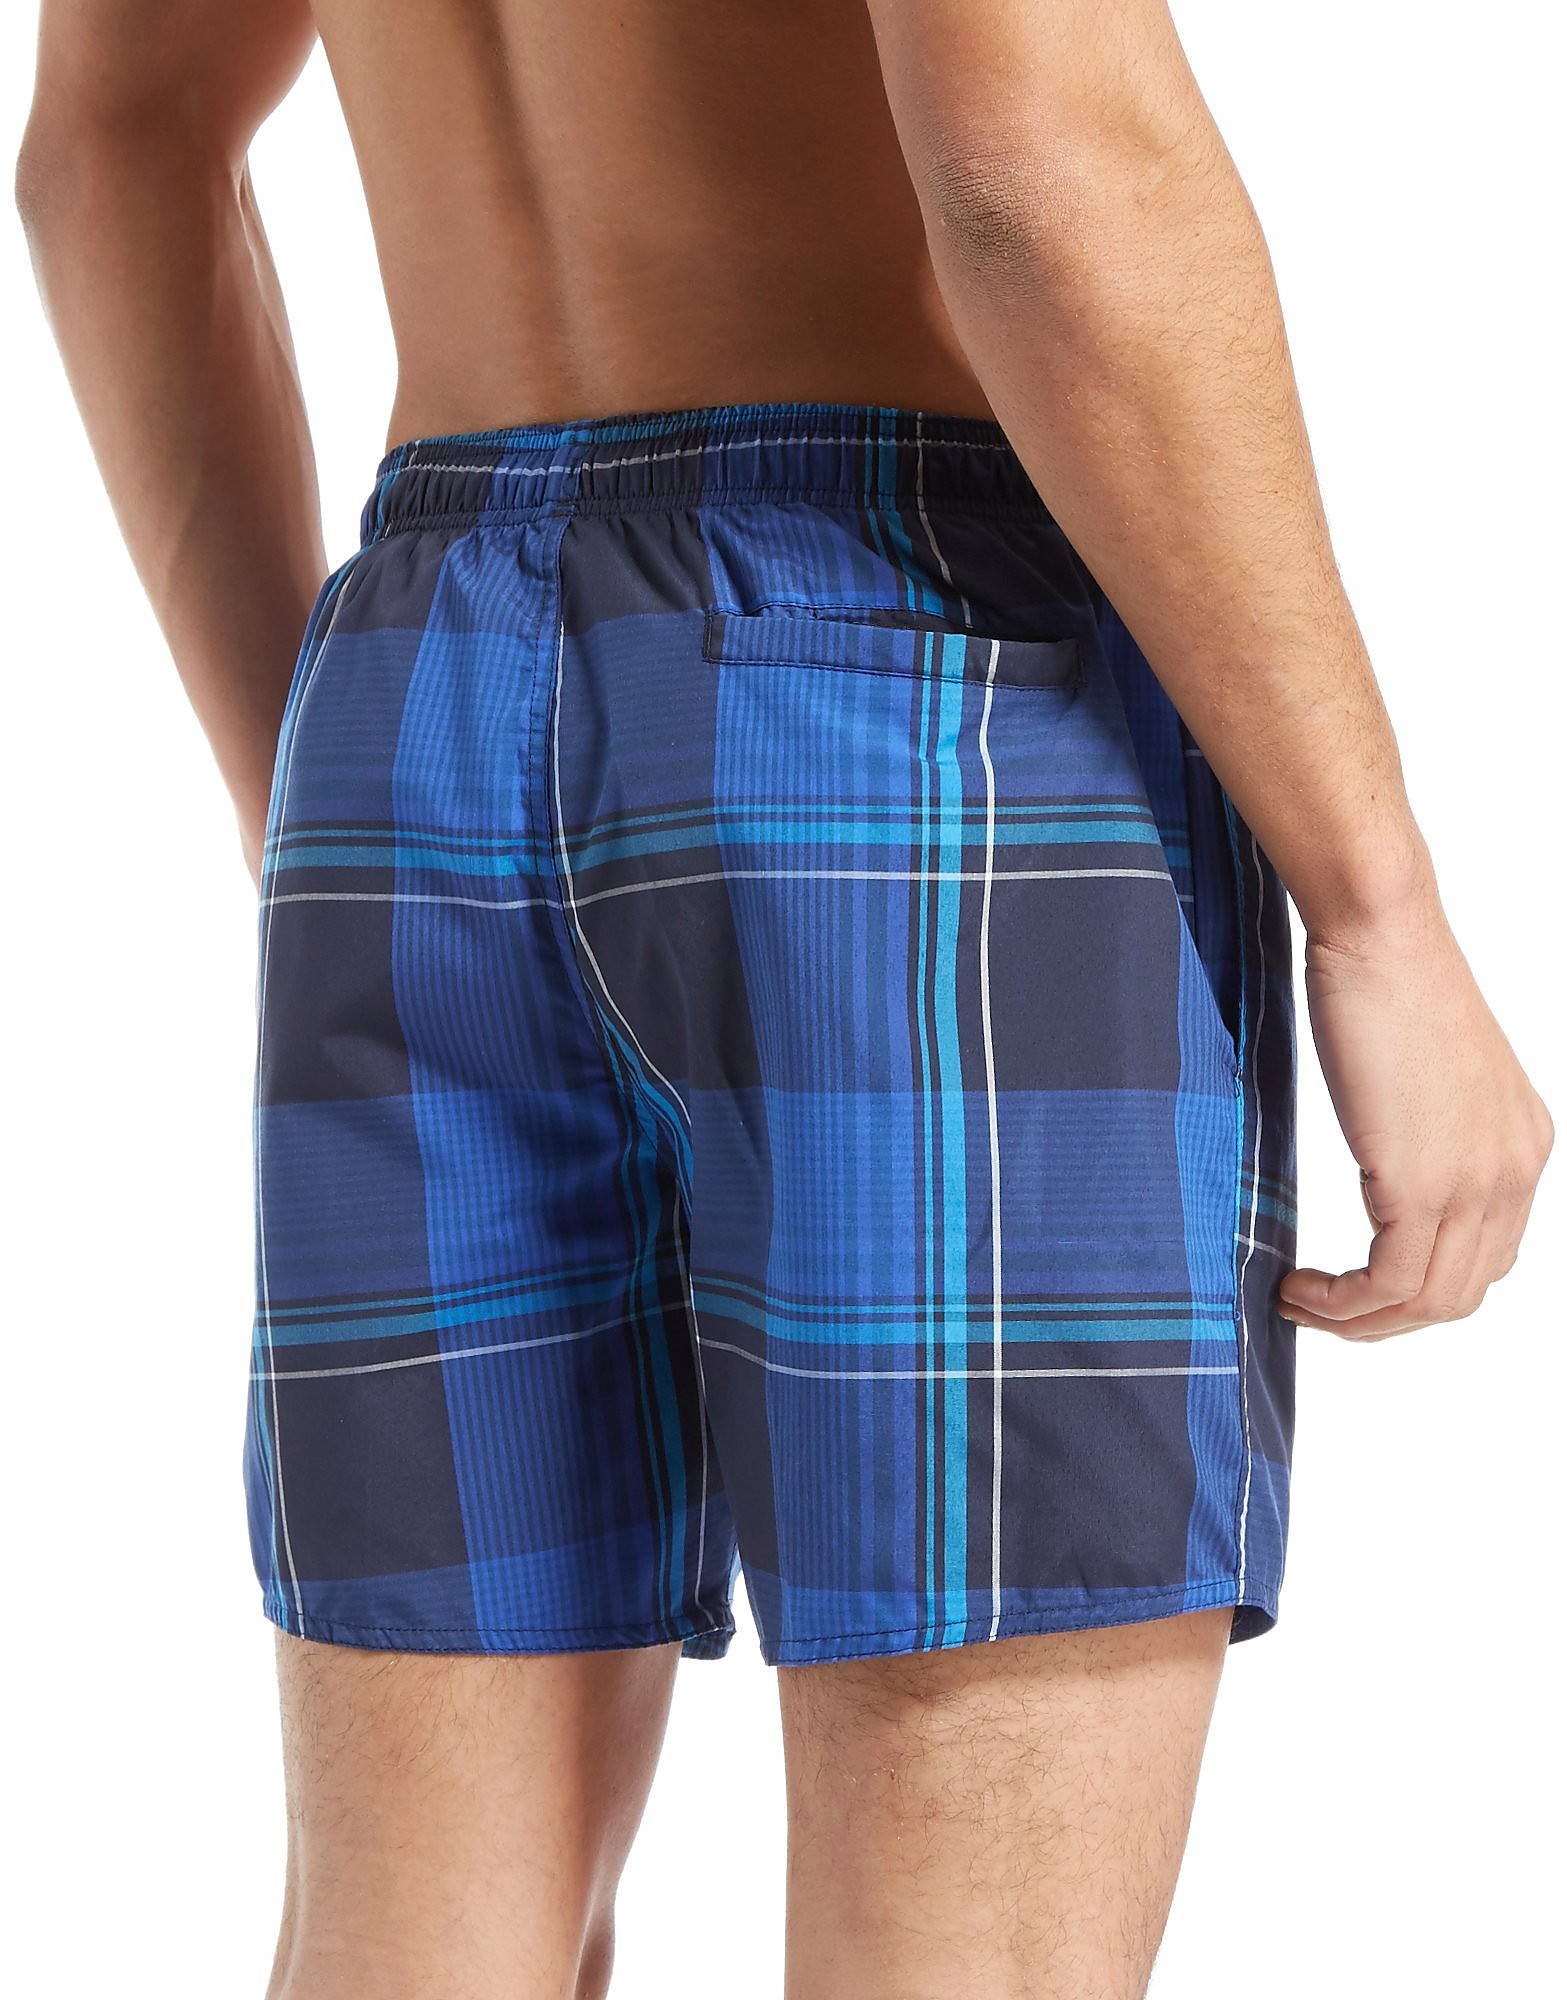 Speedo 16 Inch Check Swim Shorts